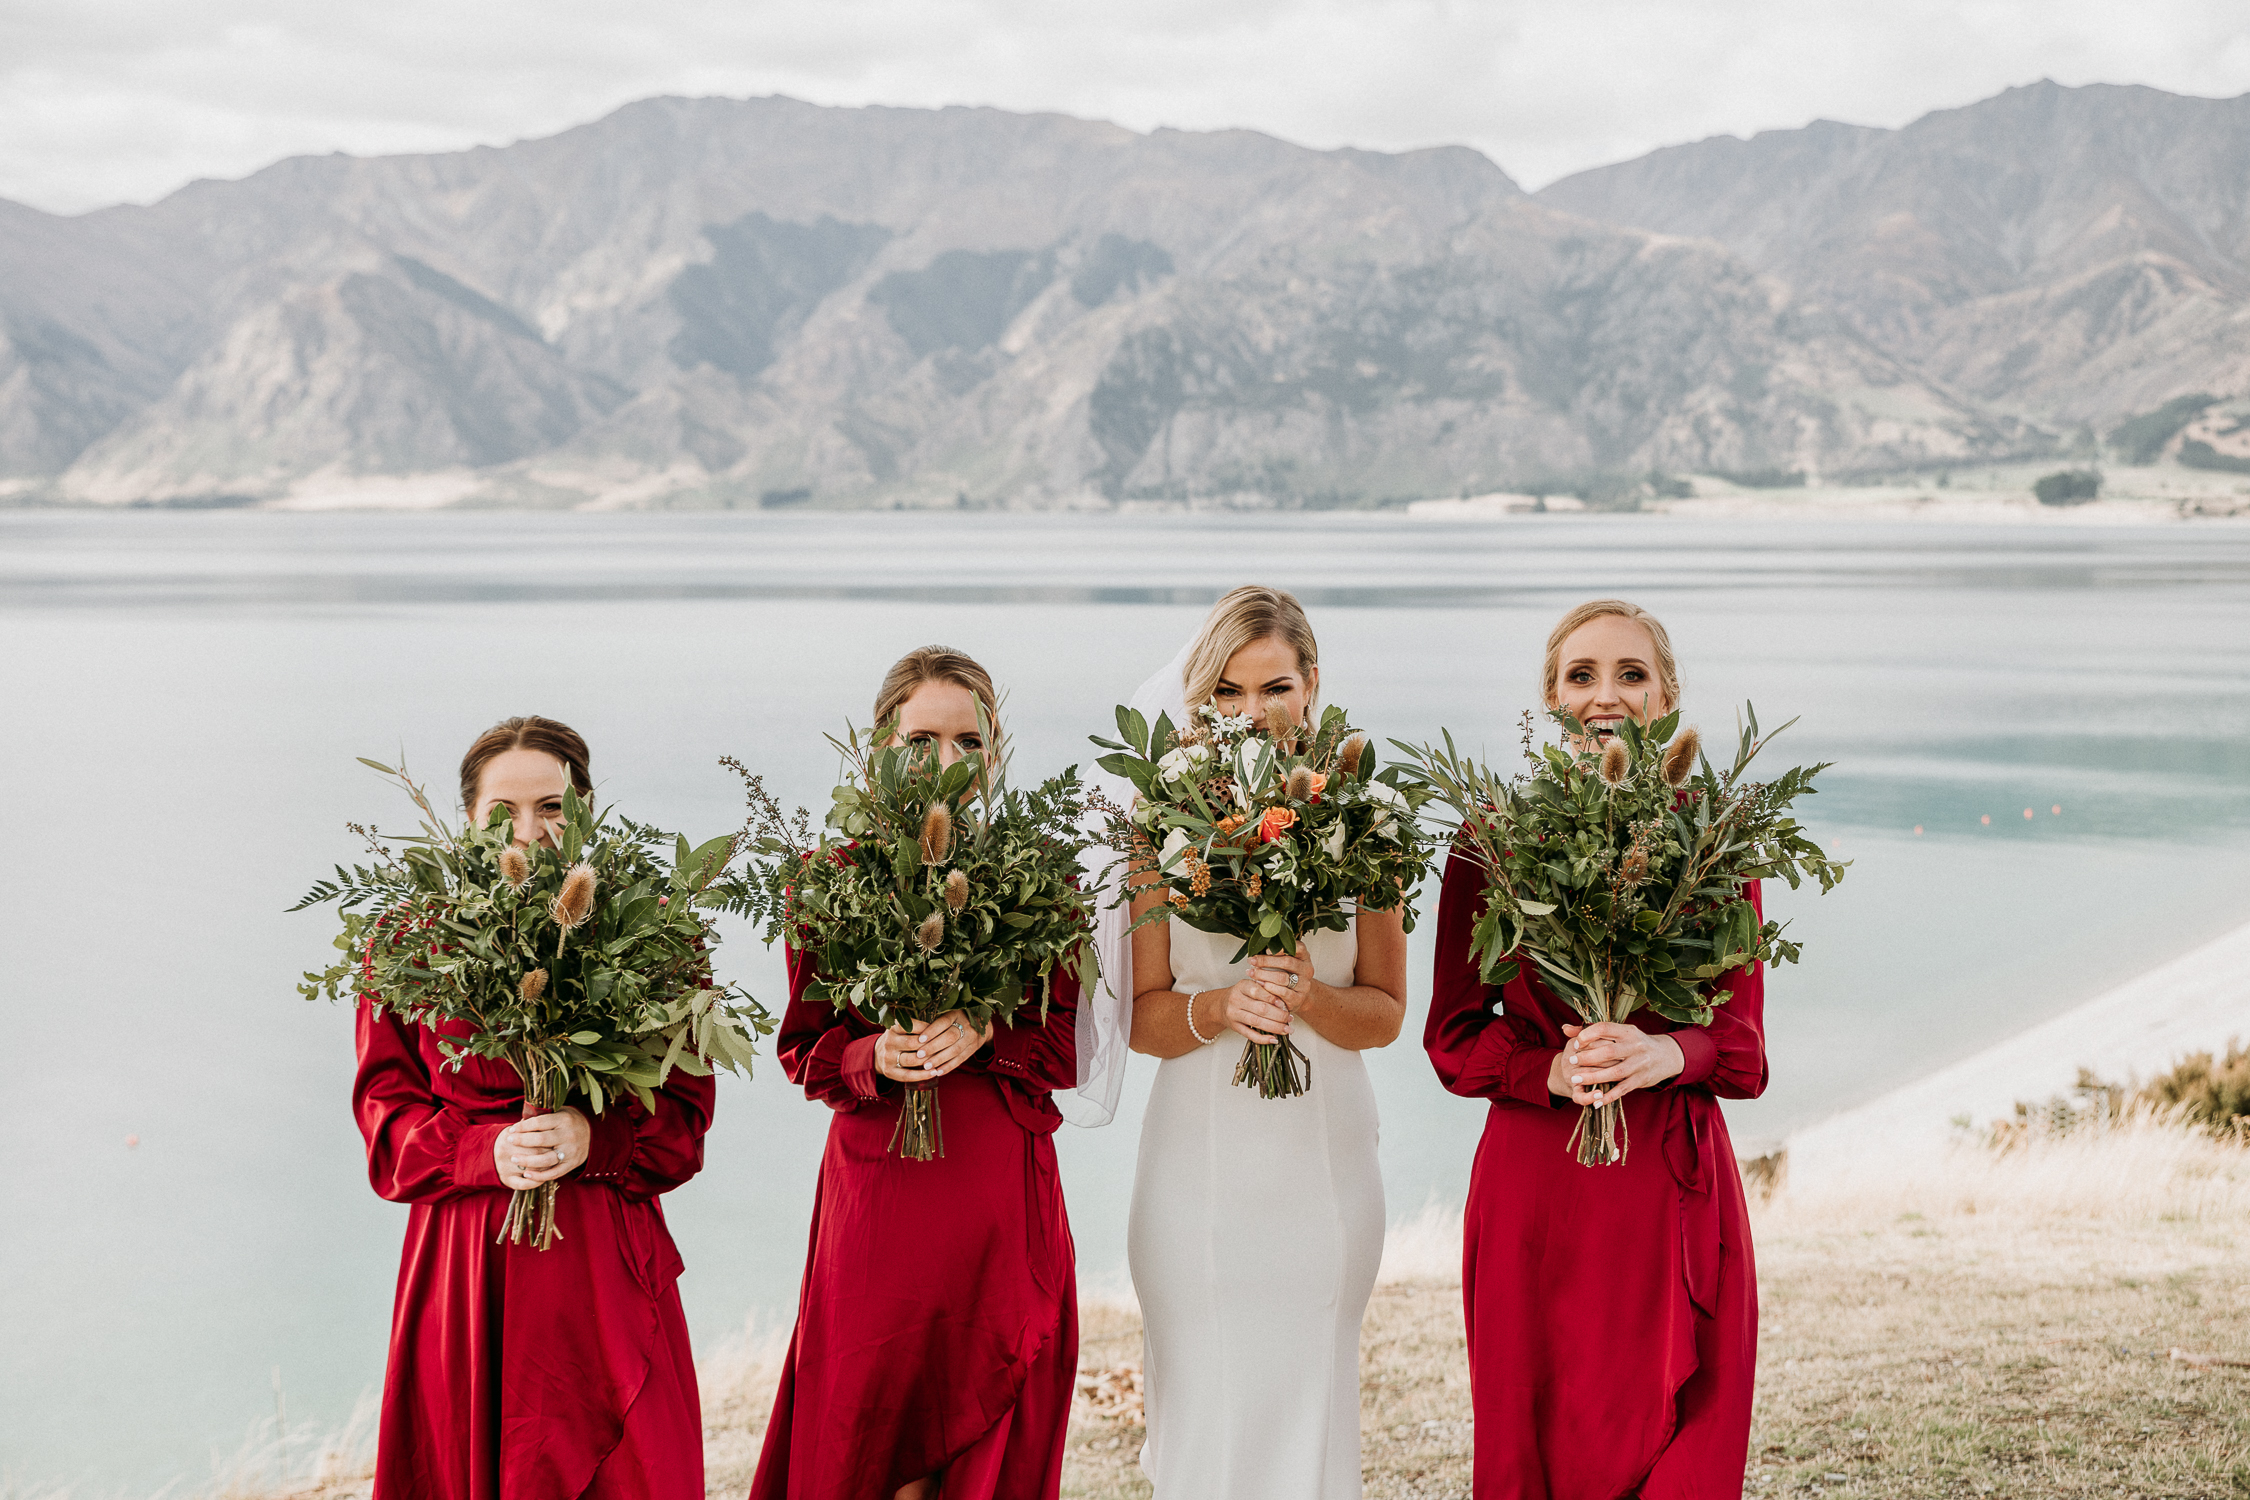 Diana-Mark-Lake-Hawea-Elopement-Wedding-Wanaka-226.jpg